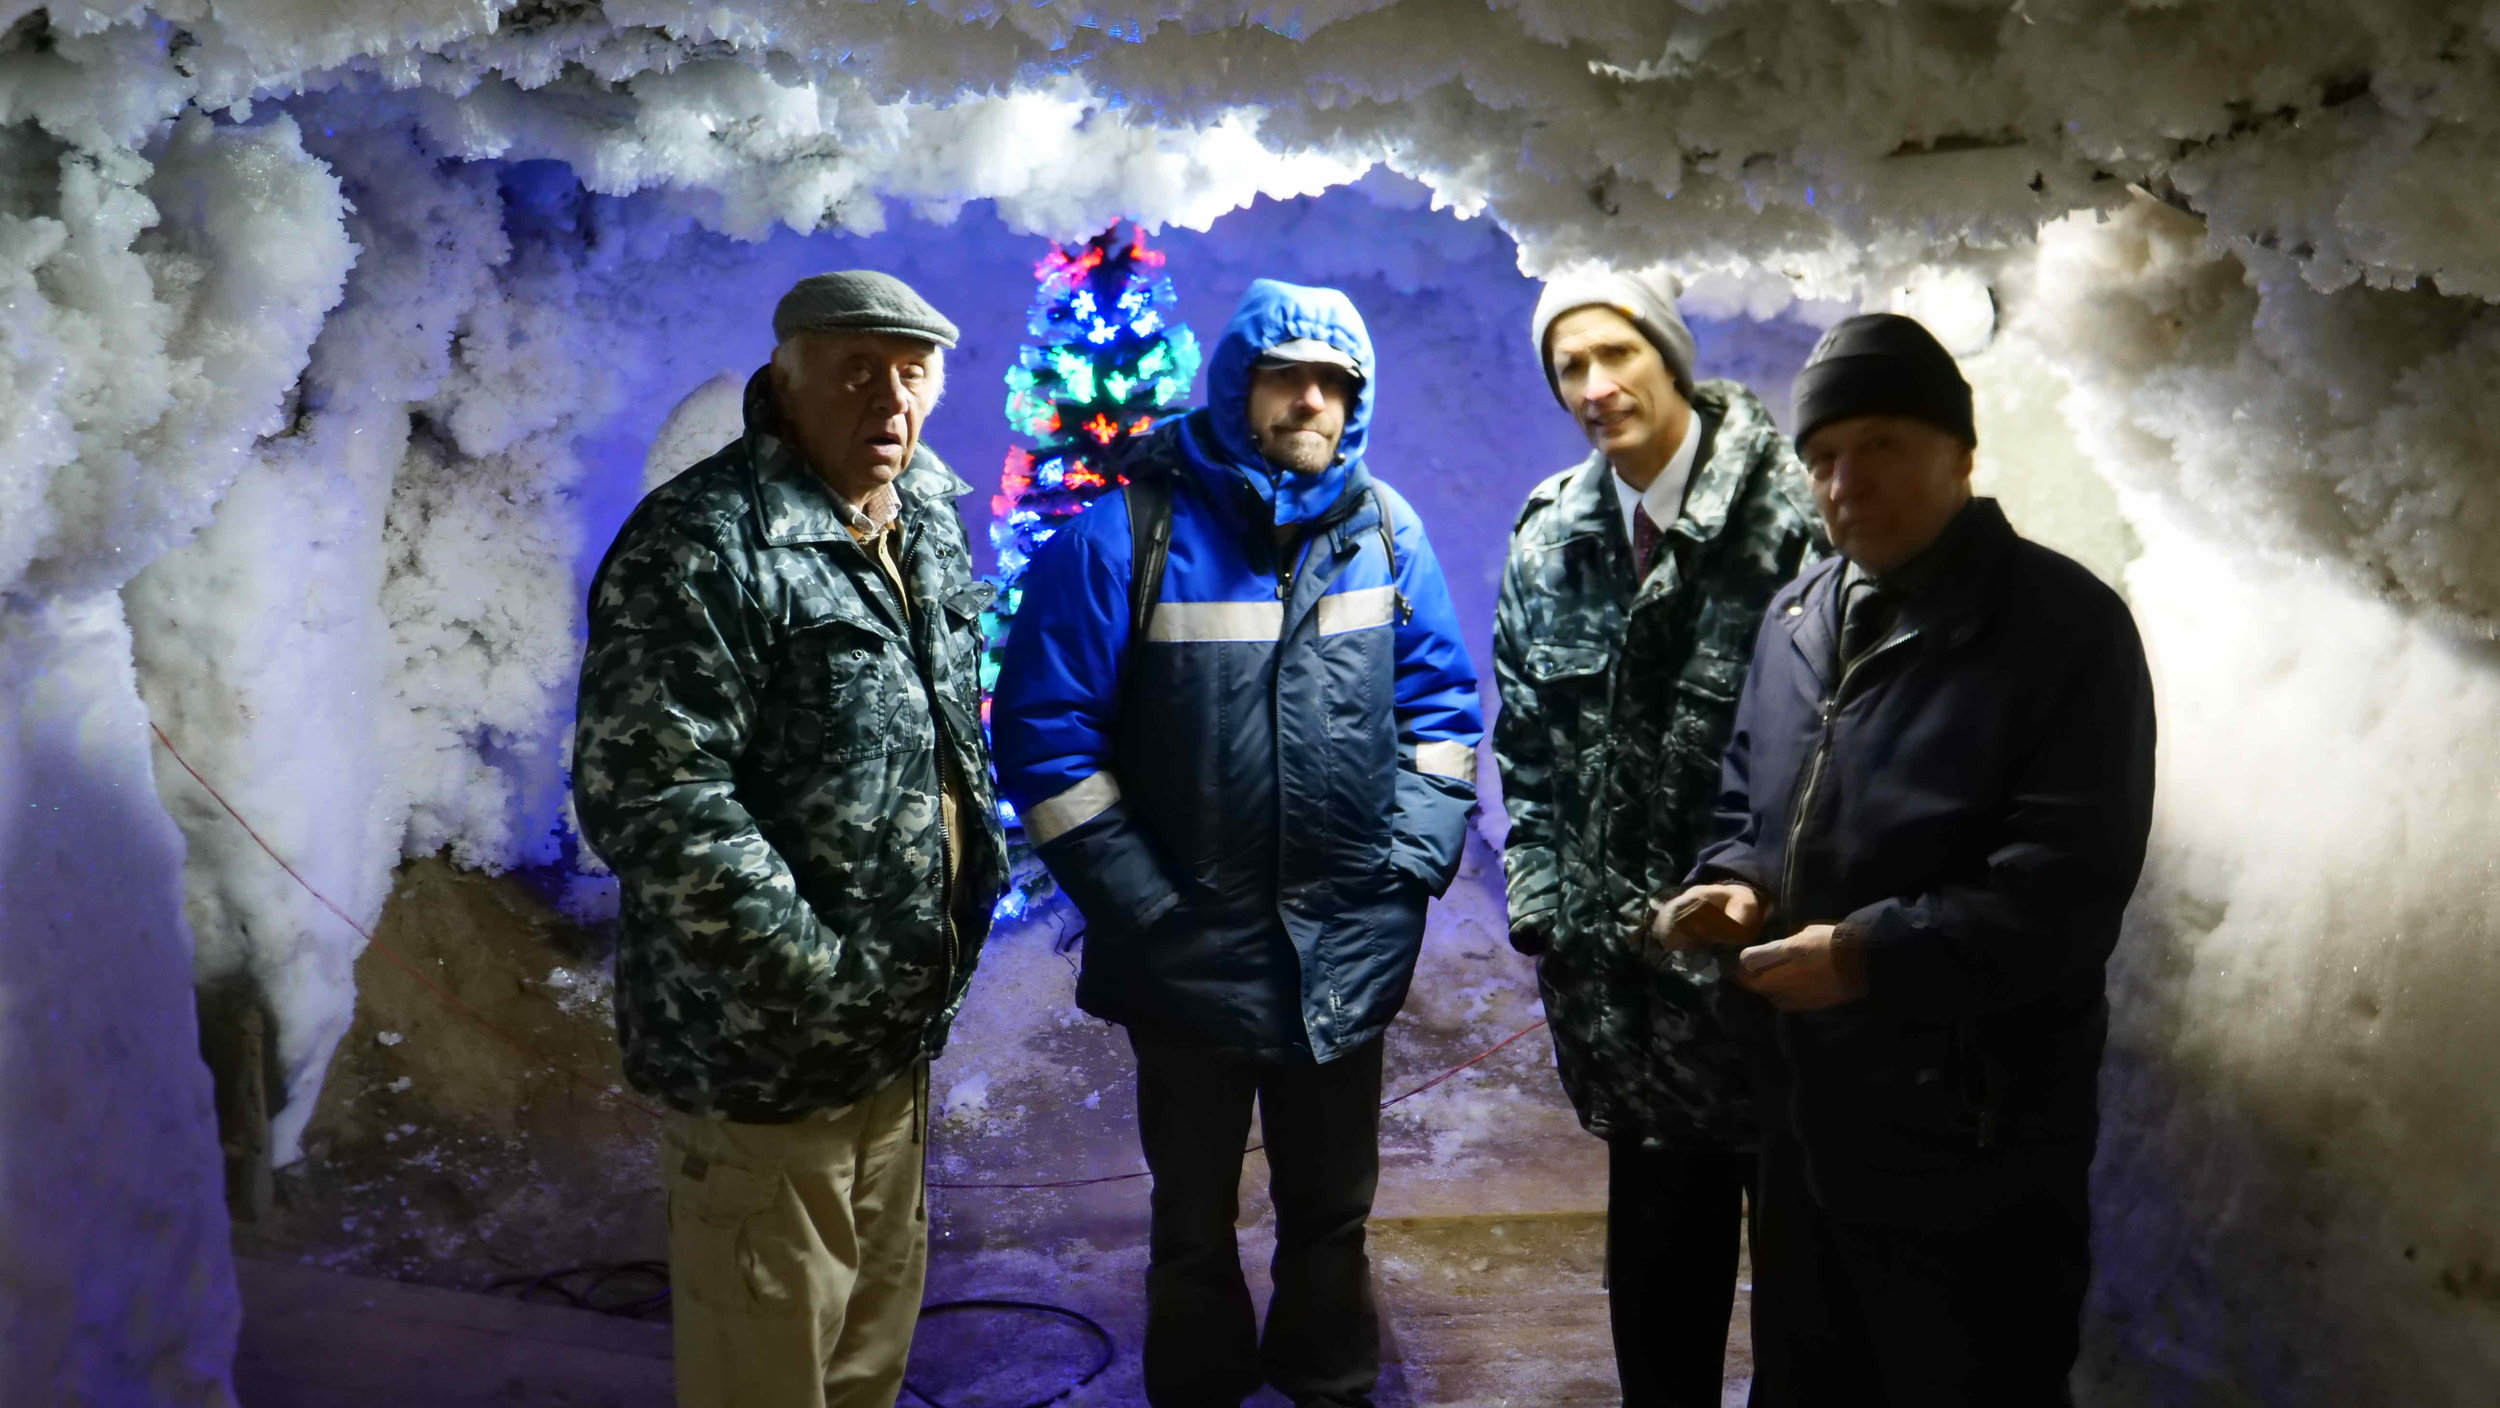 InterContinental Railway founder George Koumal, film producer Vlad Ketkovich and ICR Chief Project Advisor Scott Spencer visit the underground laboratory of the Permafrost Institute in Yakutsk under the guidance of long-time institute scientist Juri Murzin.